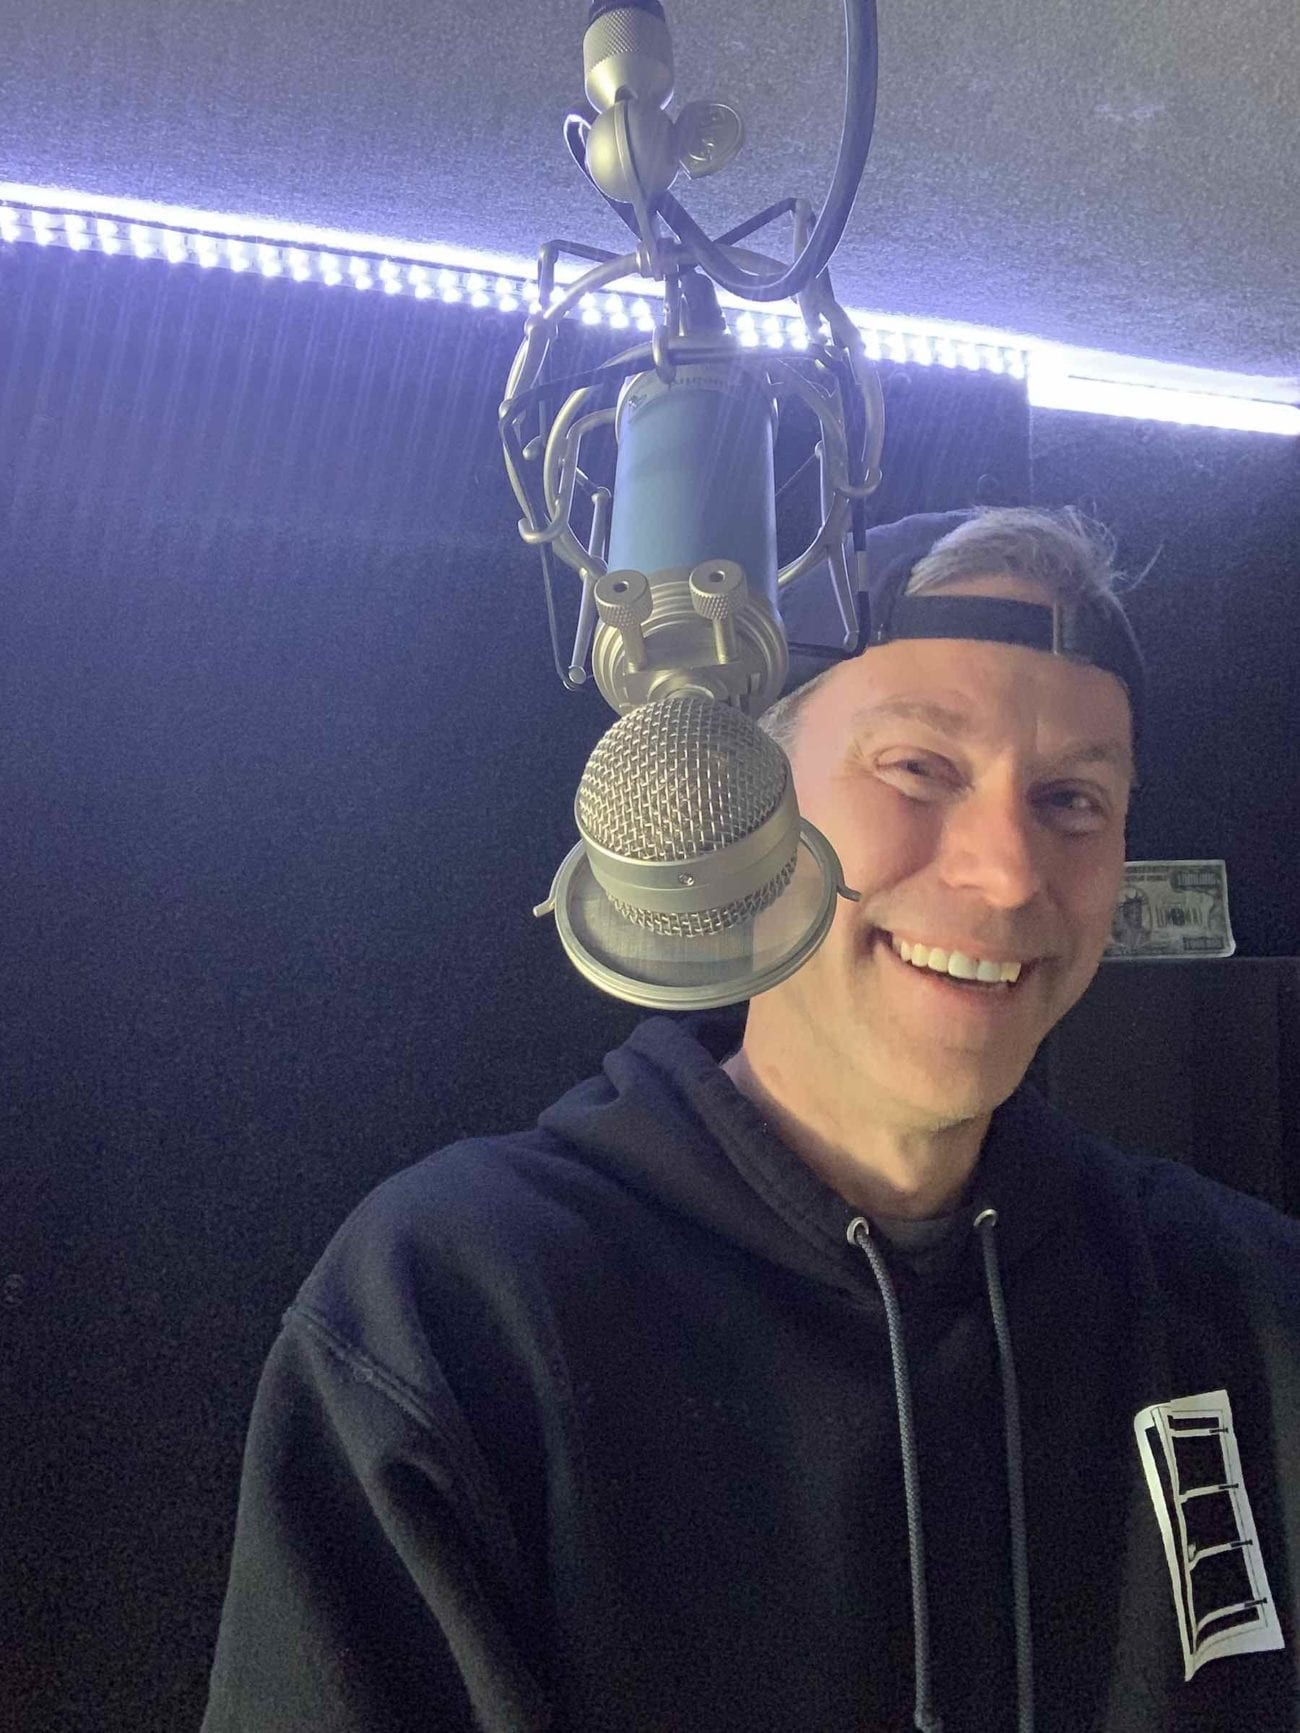 We interview the voice of Hollywood himself, Roy Samuelson. Billions have heard him in action – now we finally get to know the man behind the voice.